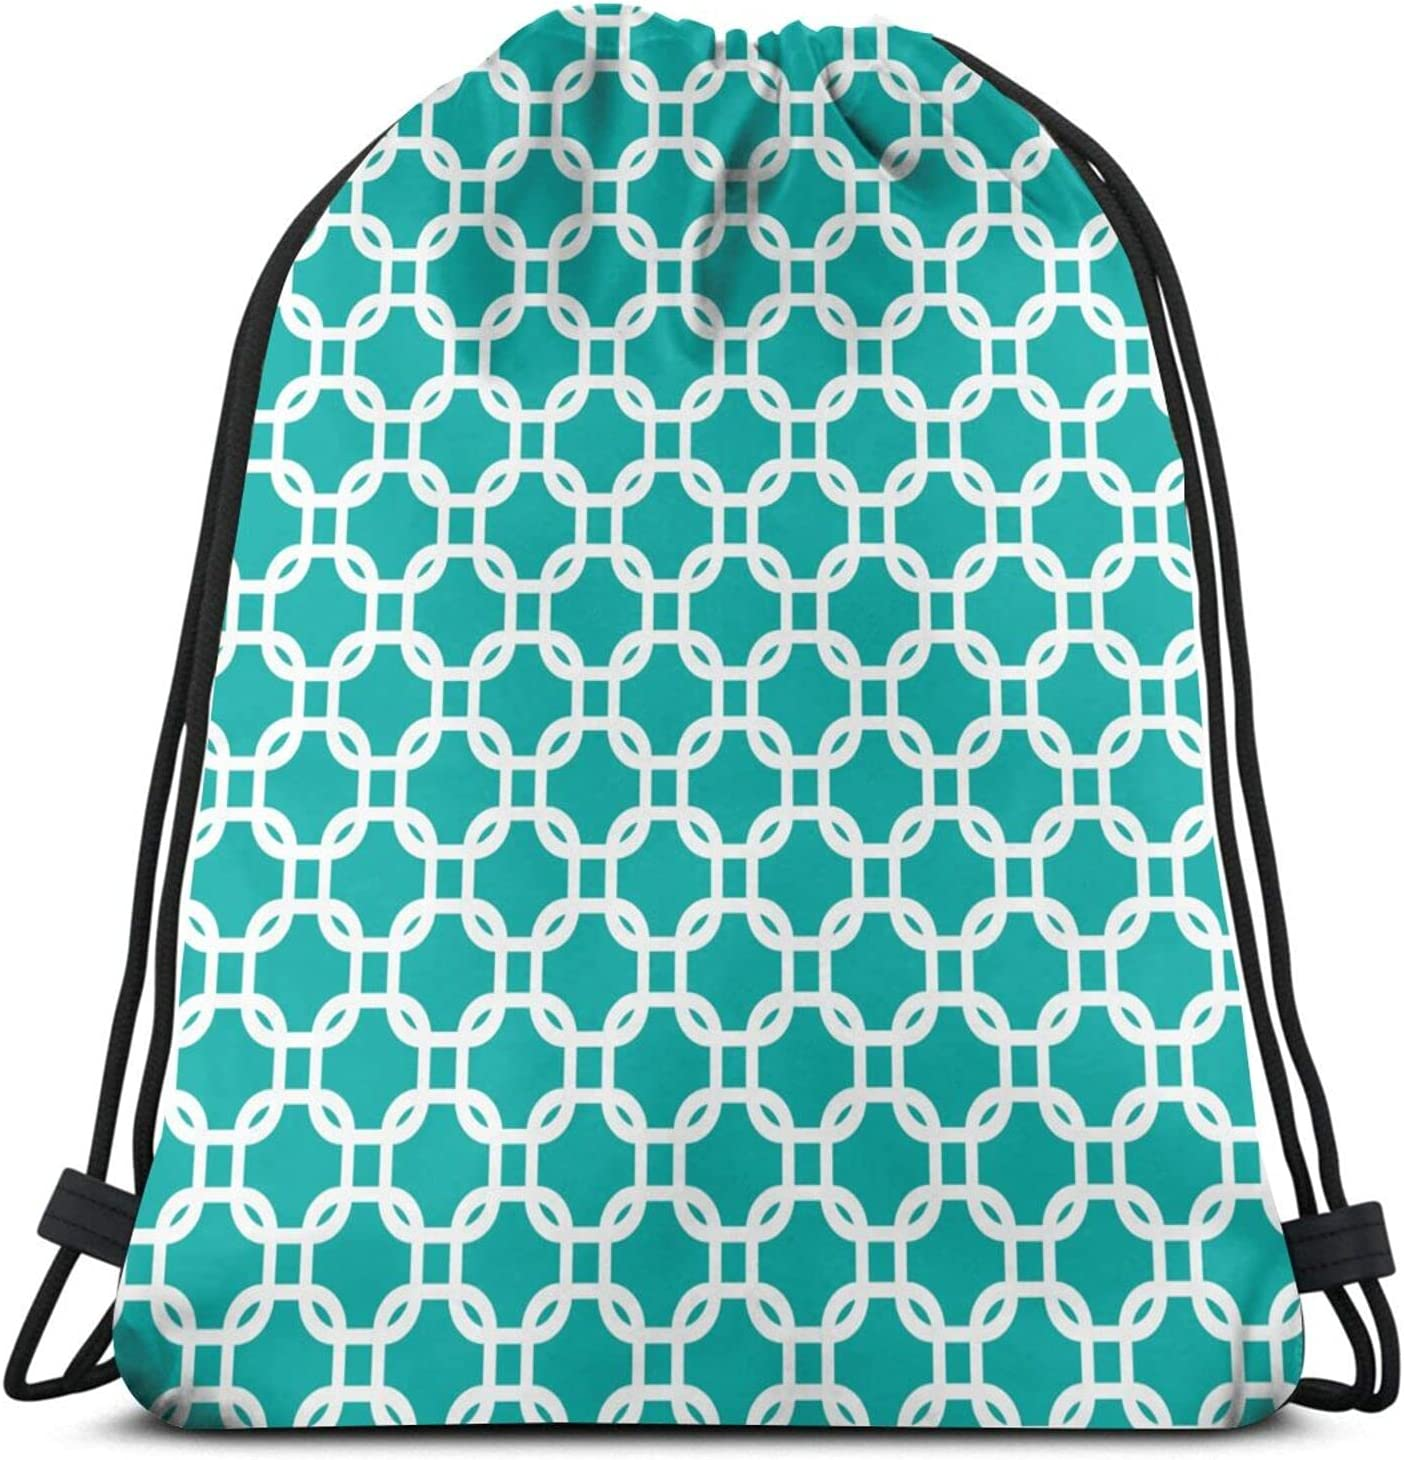 Chain Link Drawstring Backpack 16.5